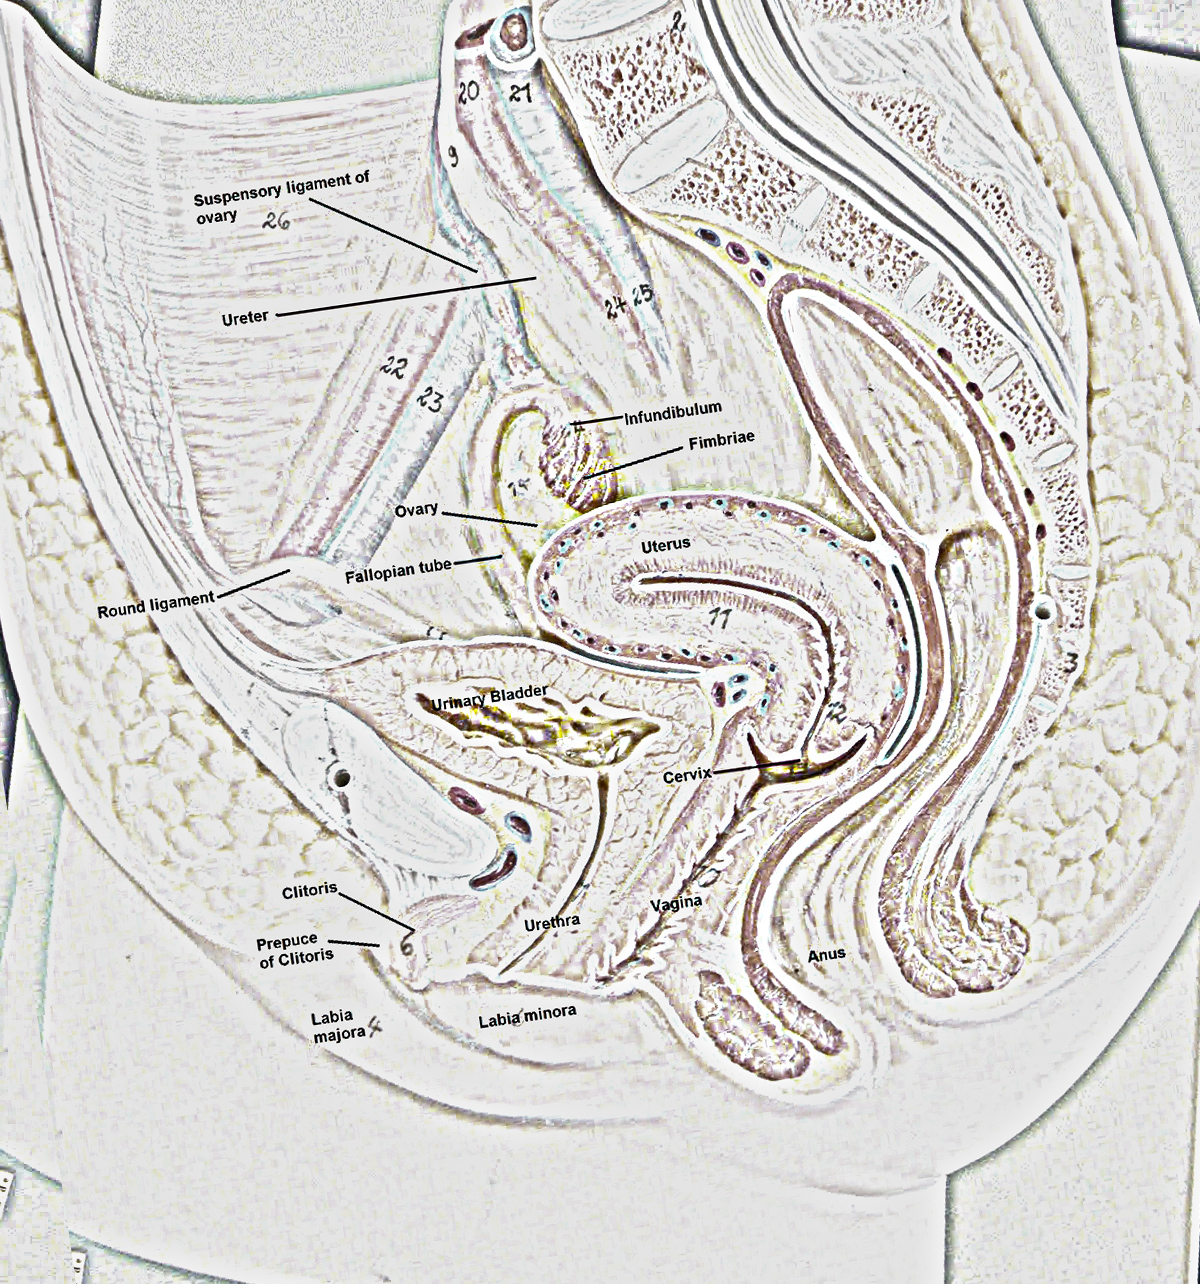 My Homeworks Photos Male And Female Reproductive System-5751